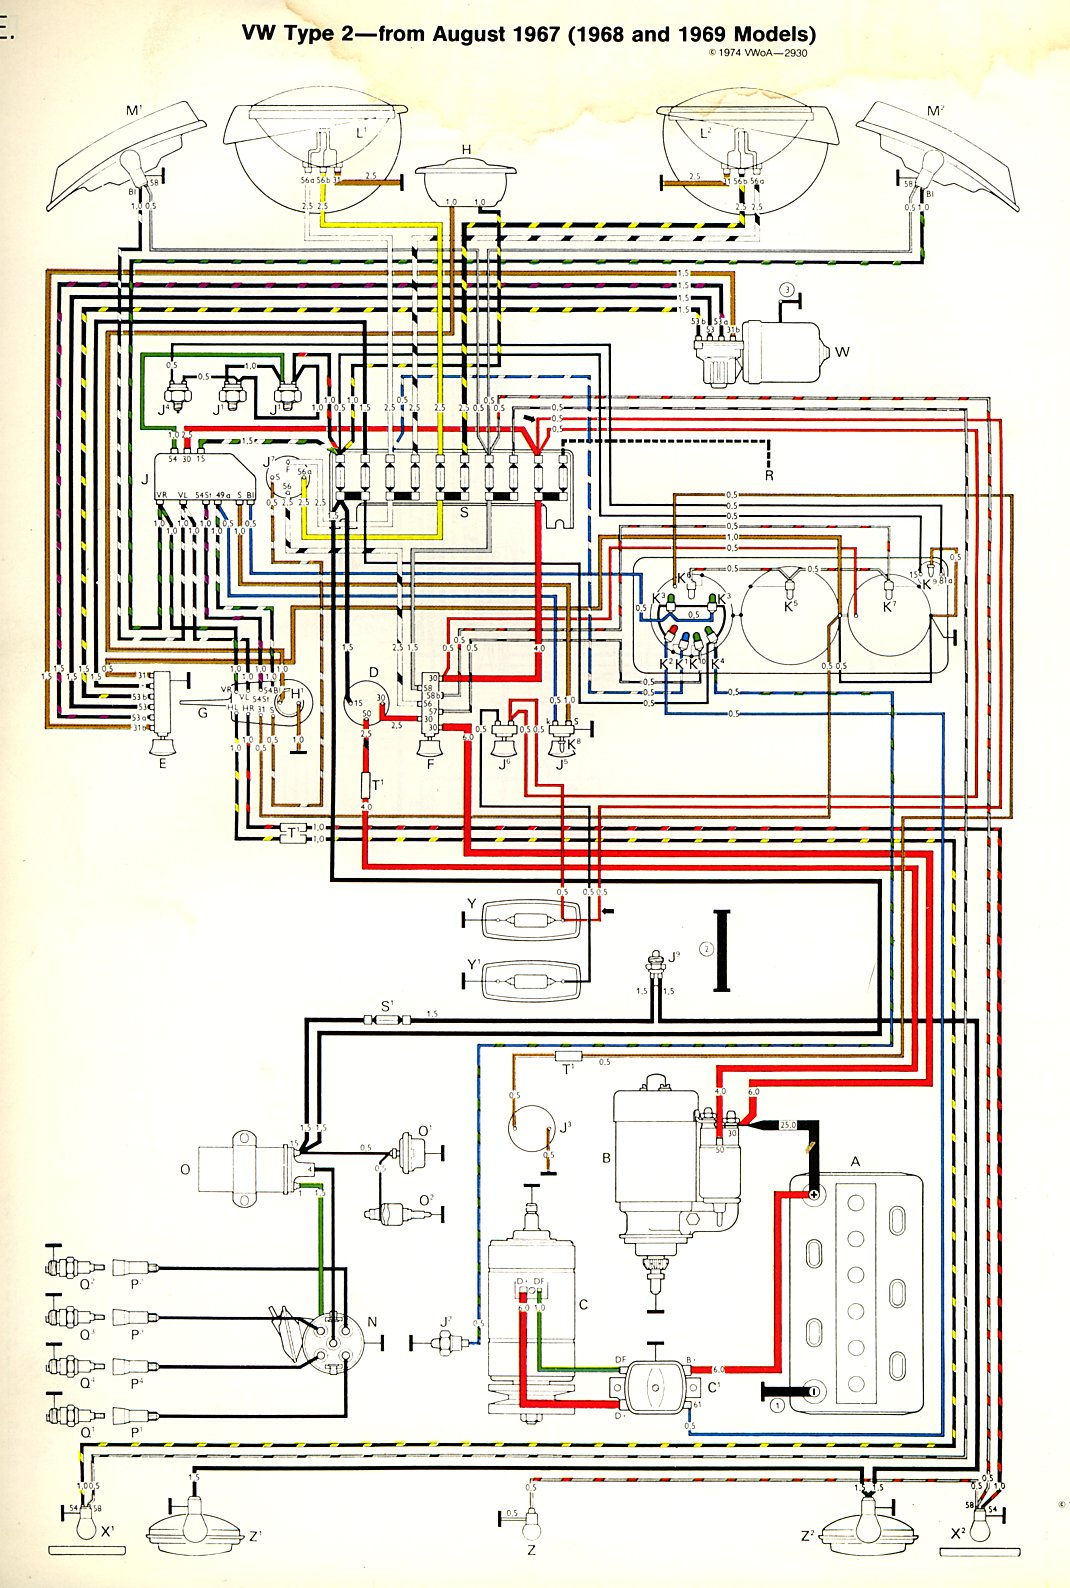 baybus_6869a 28 [ 1971 vw bus wiring diagram ] 1971 vw bus turn signal 74 VW Beetle Wiring Diagram at crackthecode.co